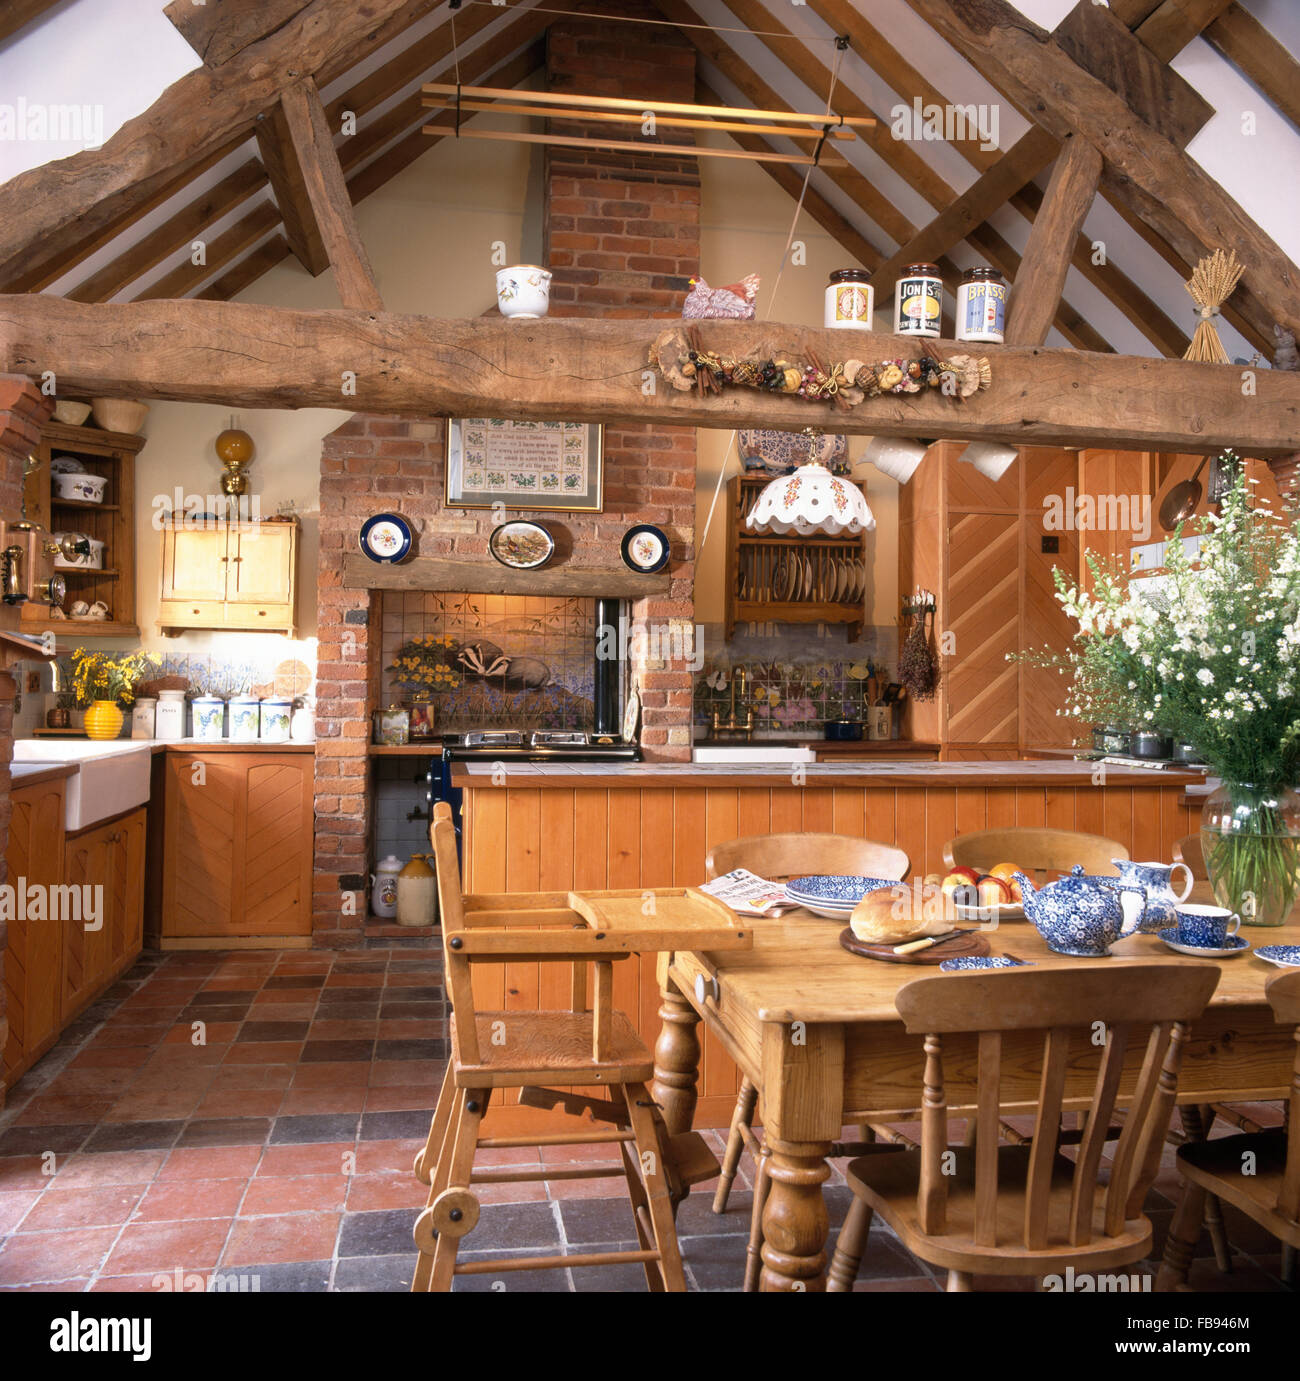 Wooden Chairs And Childu0027s High Chair At Pine Table In Barn Conversion  Kitchen With Rustic Wooden Beams